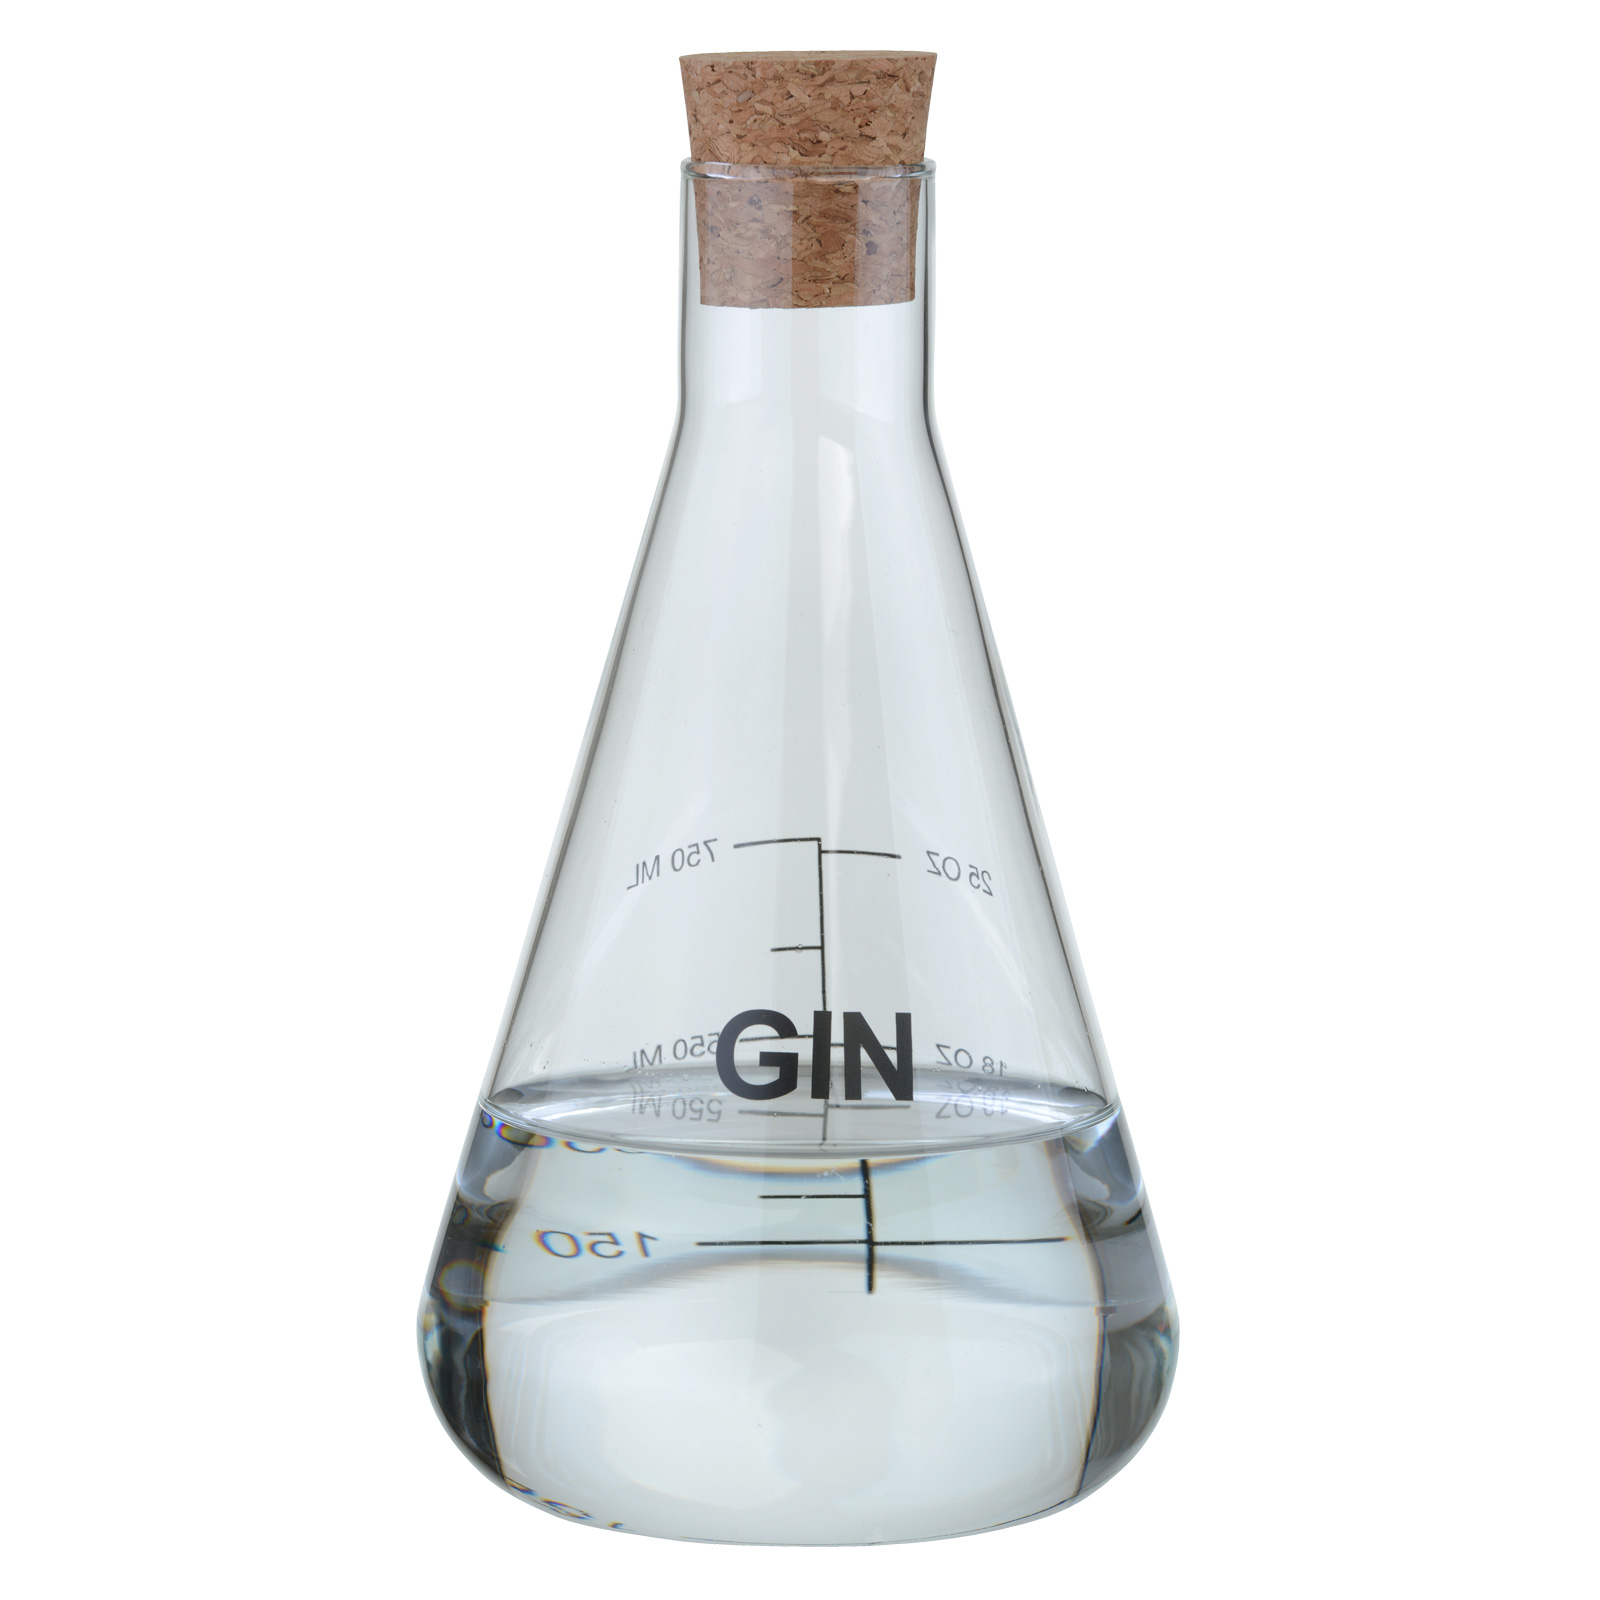 Mixology Gin Decanter